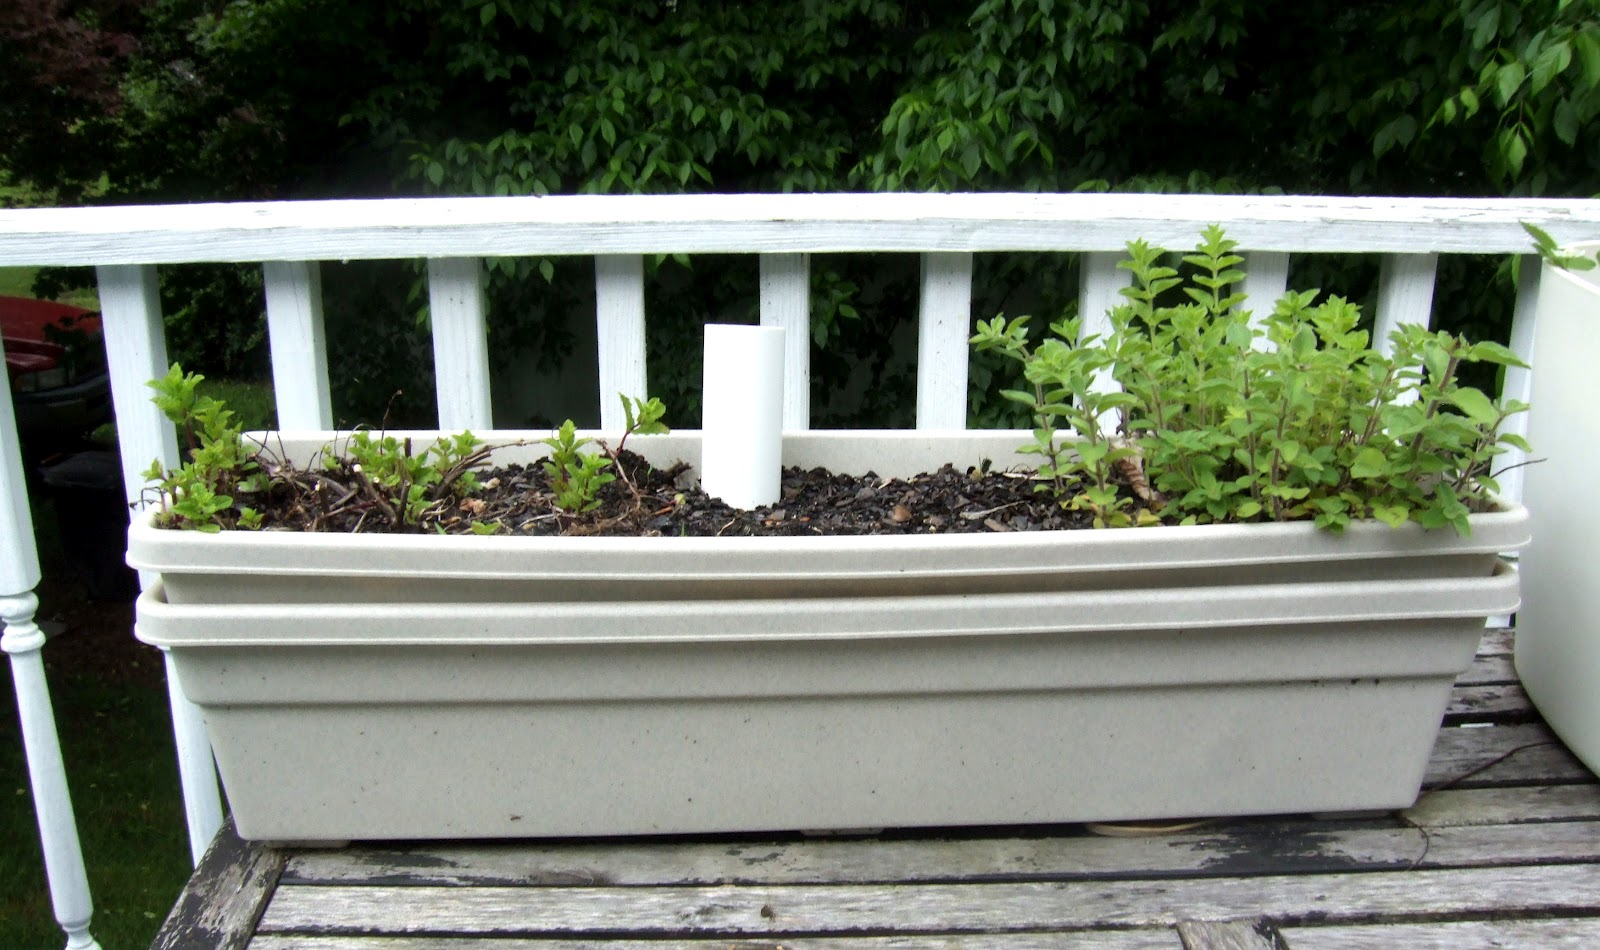 Two nesting pots as a self-watering planter option